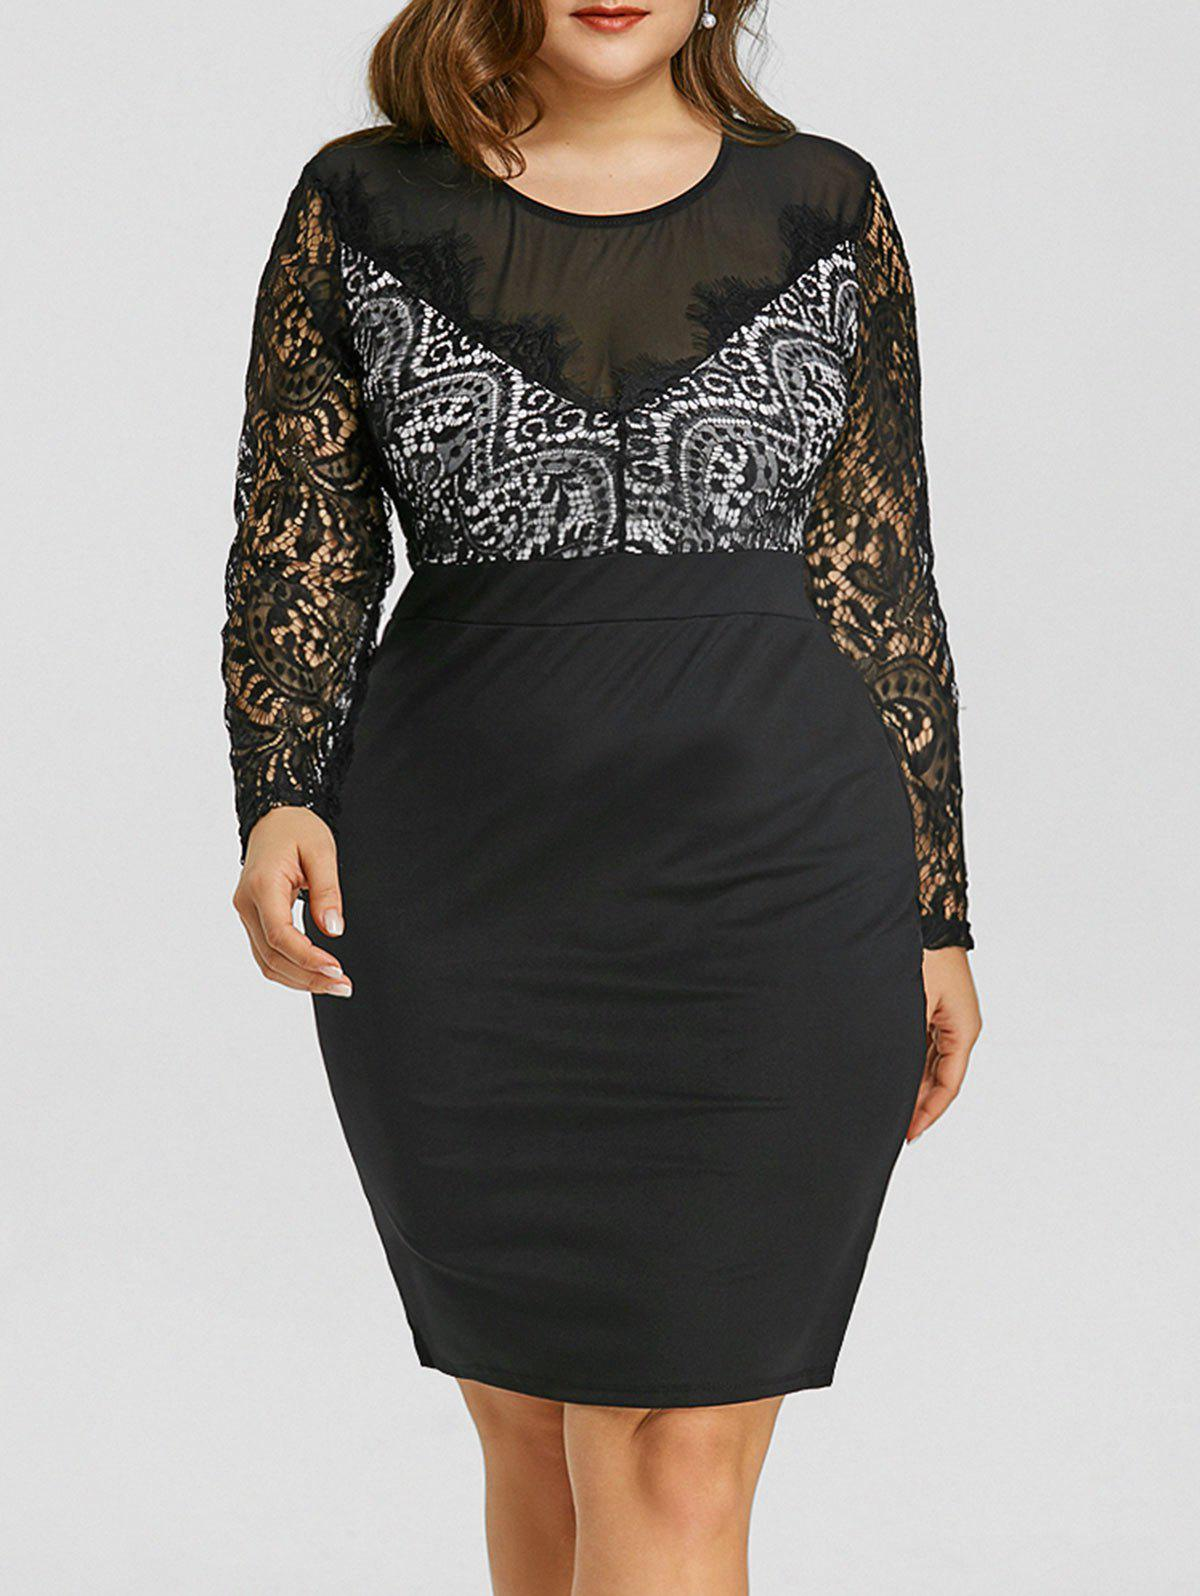 Plus Size Sheer Mesh Lace Insert Dress plus size embroidered mesh insert party dress